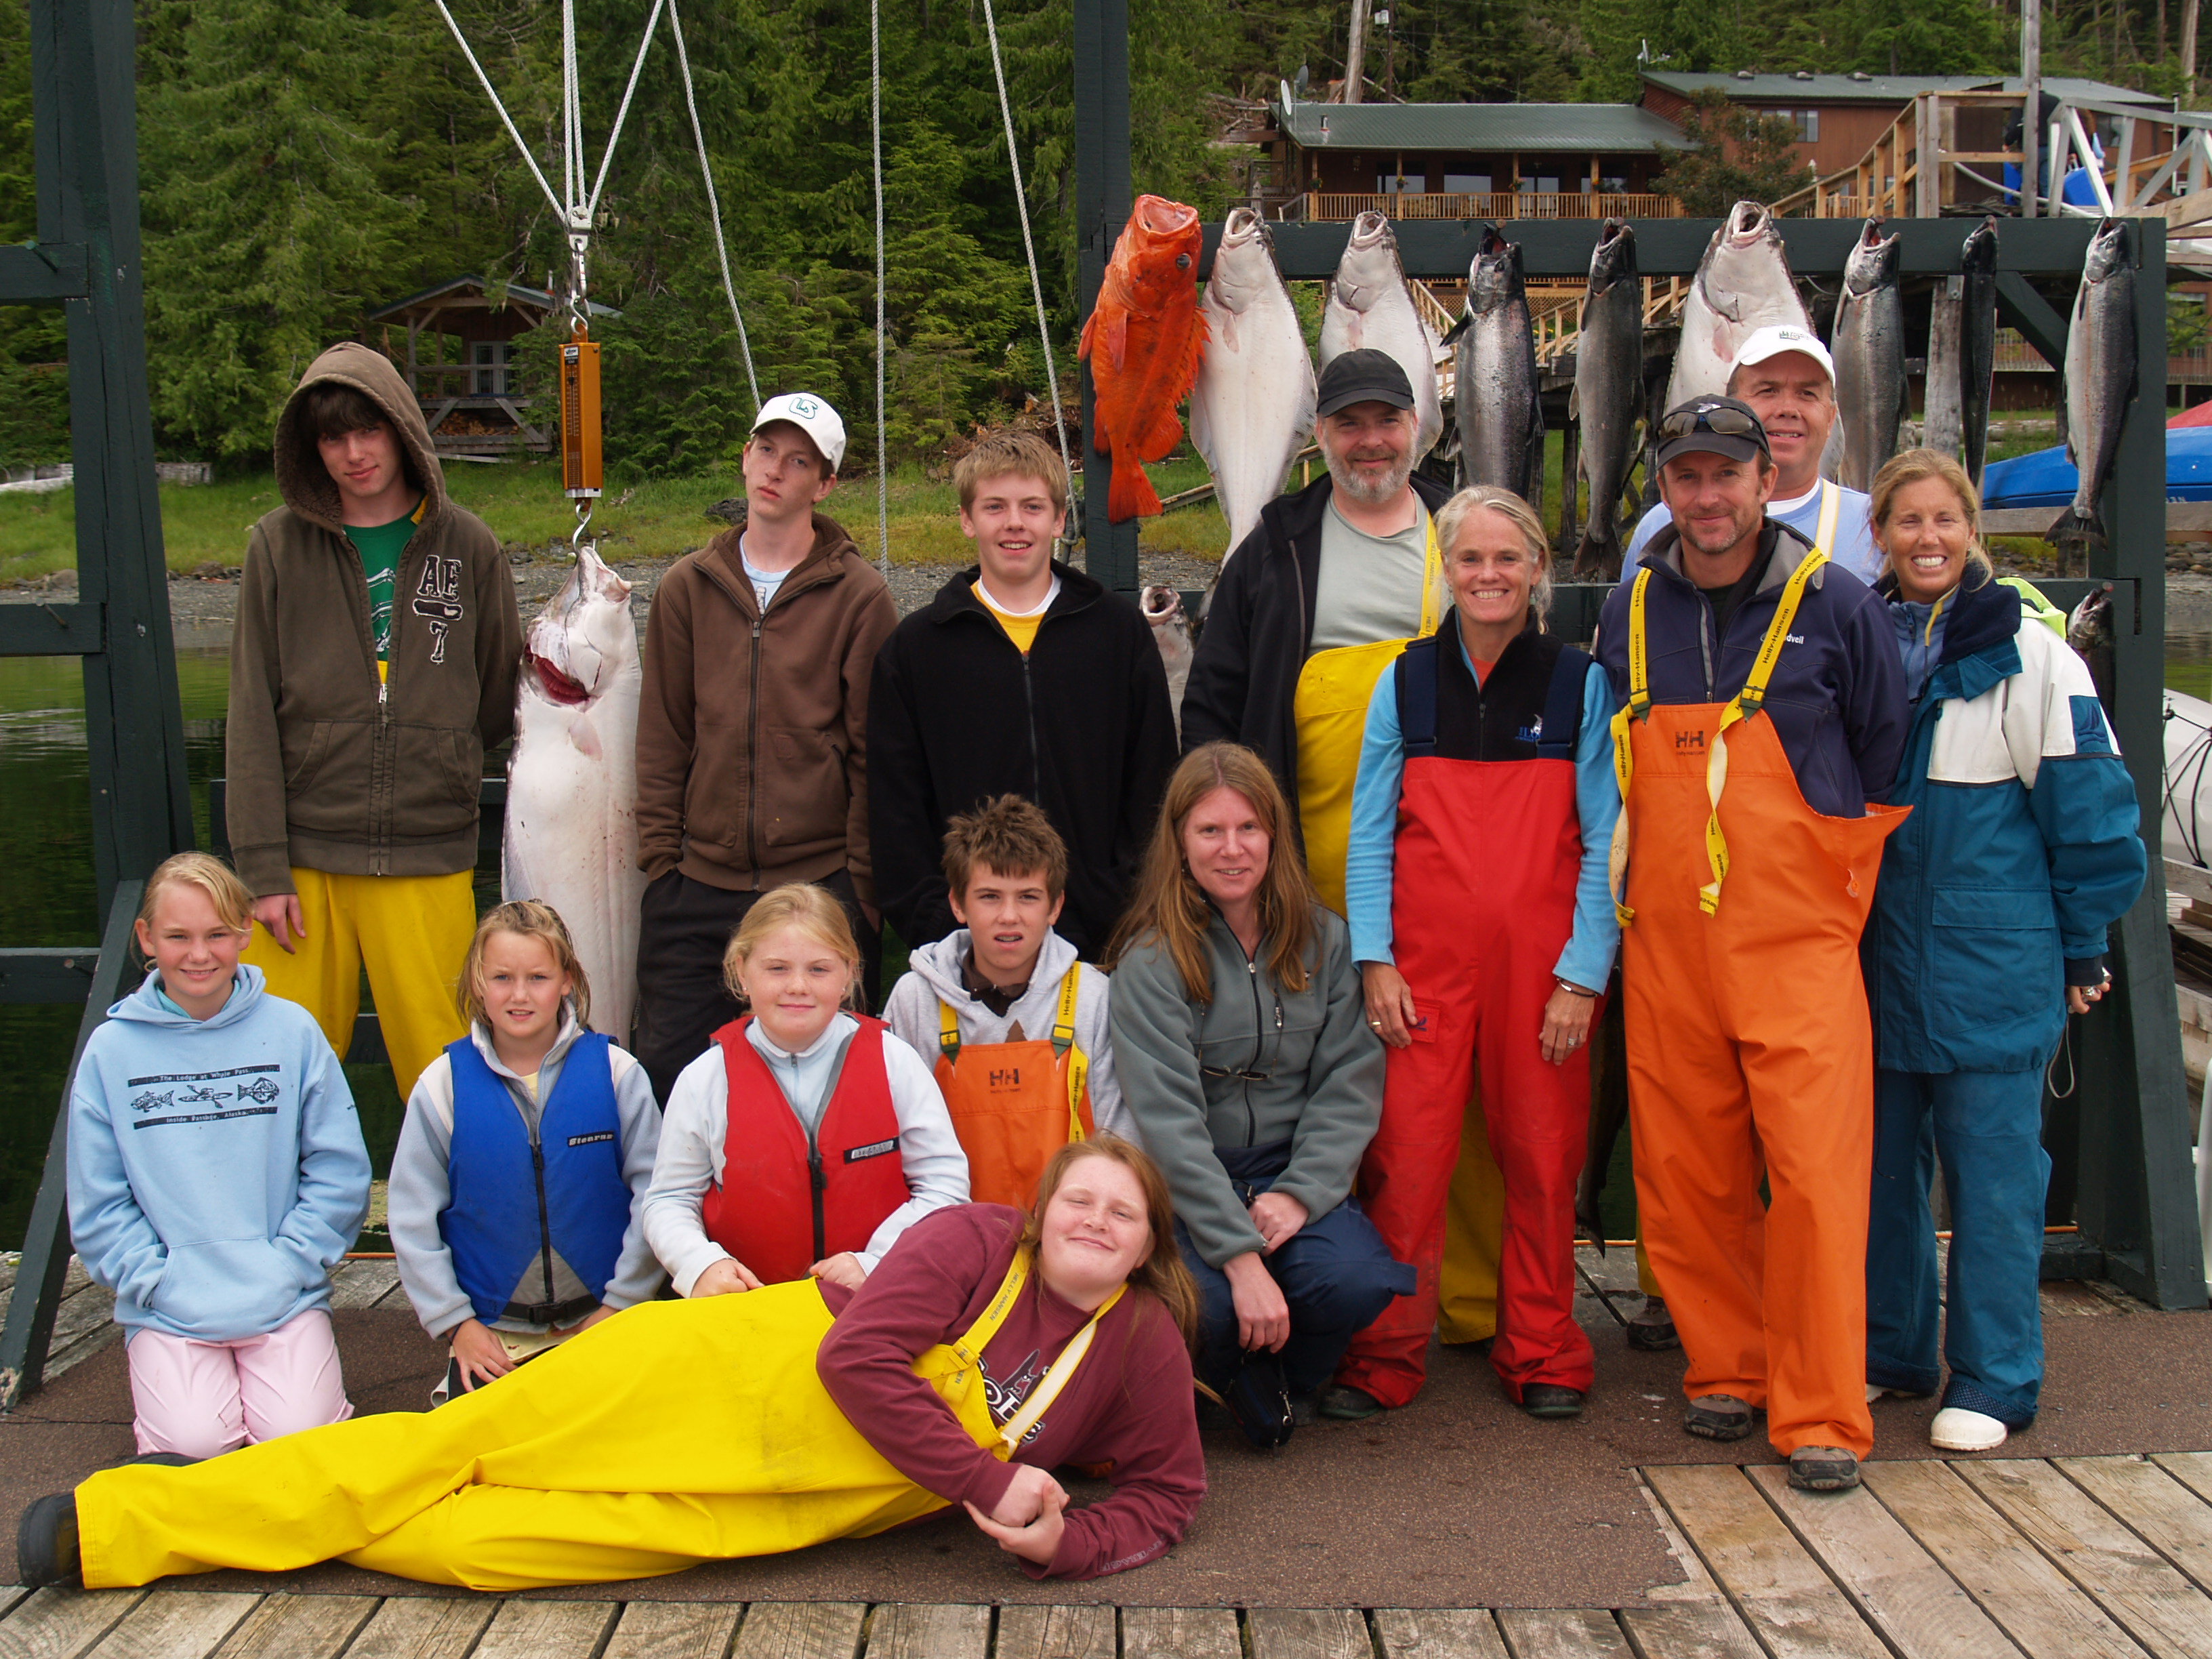 Sweeny family pose with halibut and salmon at The Lodge at Whale Pass